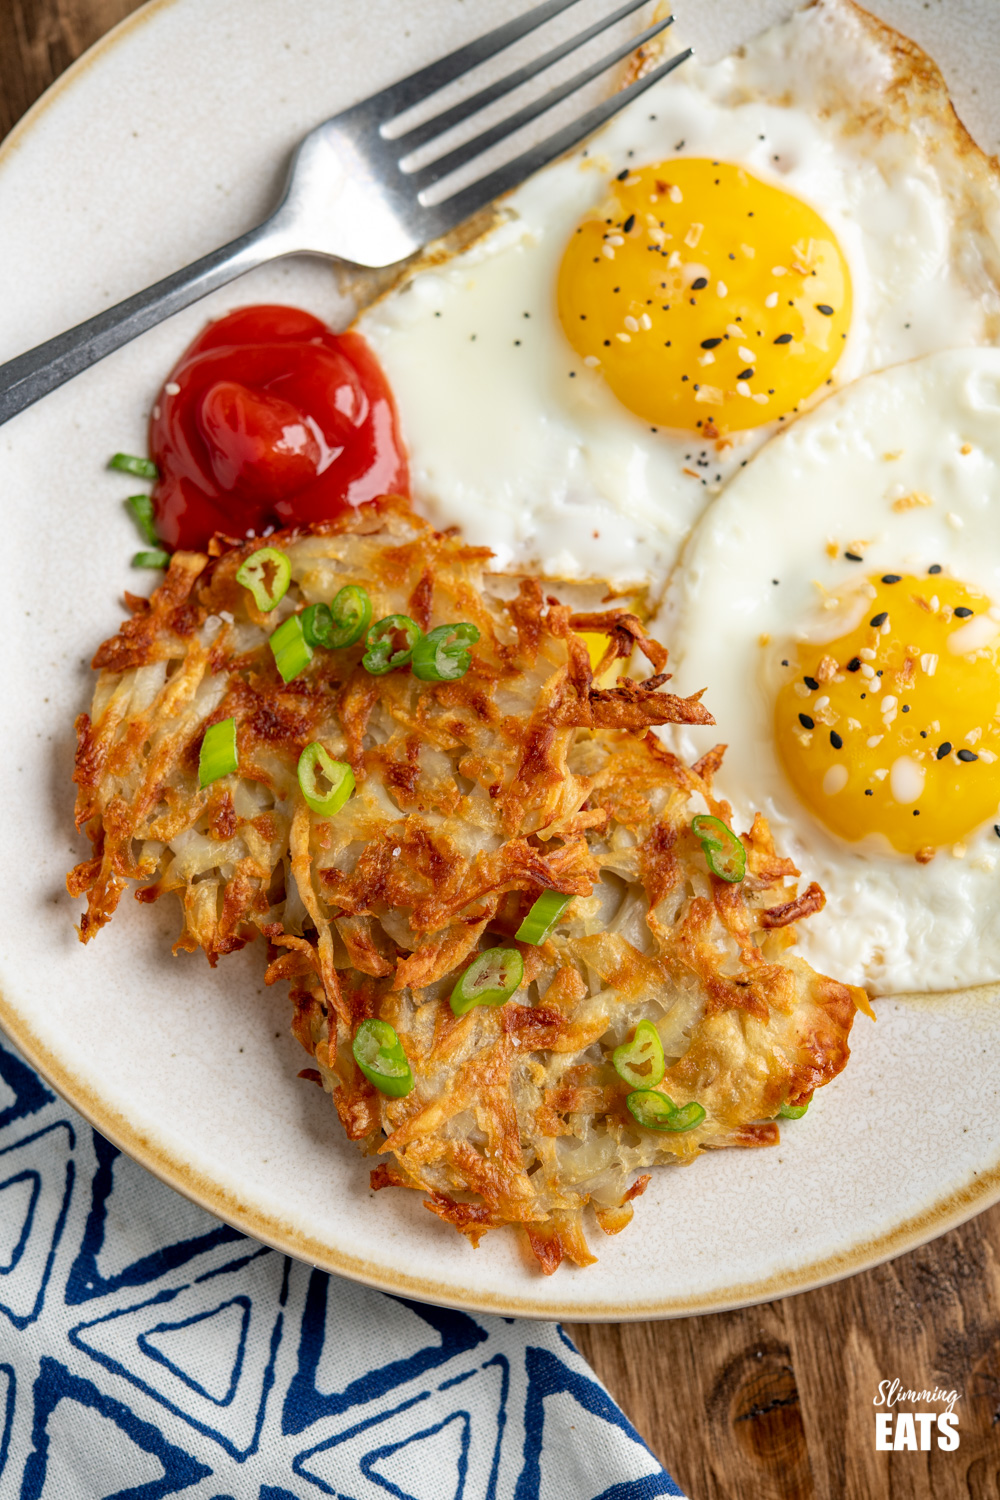 close up of Crispy Golden Hash Browns on plate sprinkled with spring onions and served with eggs and ketchup